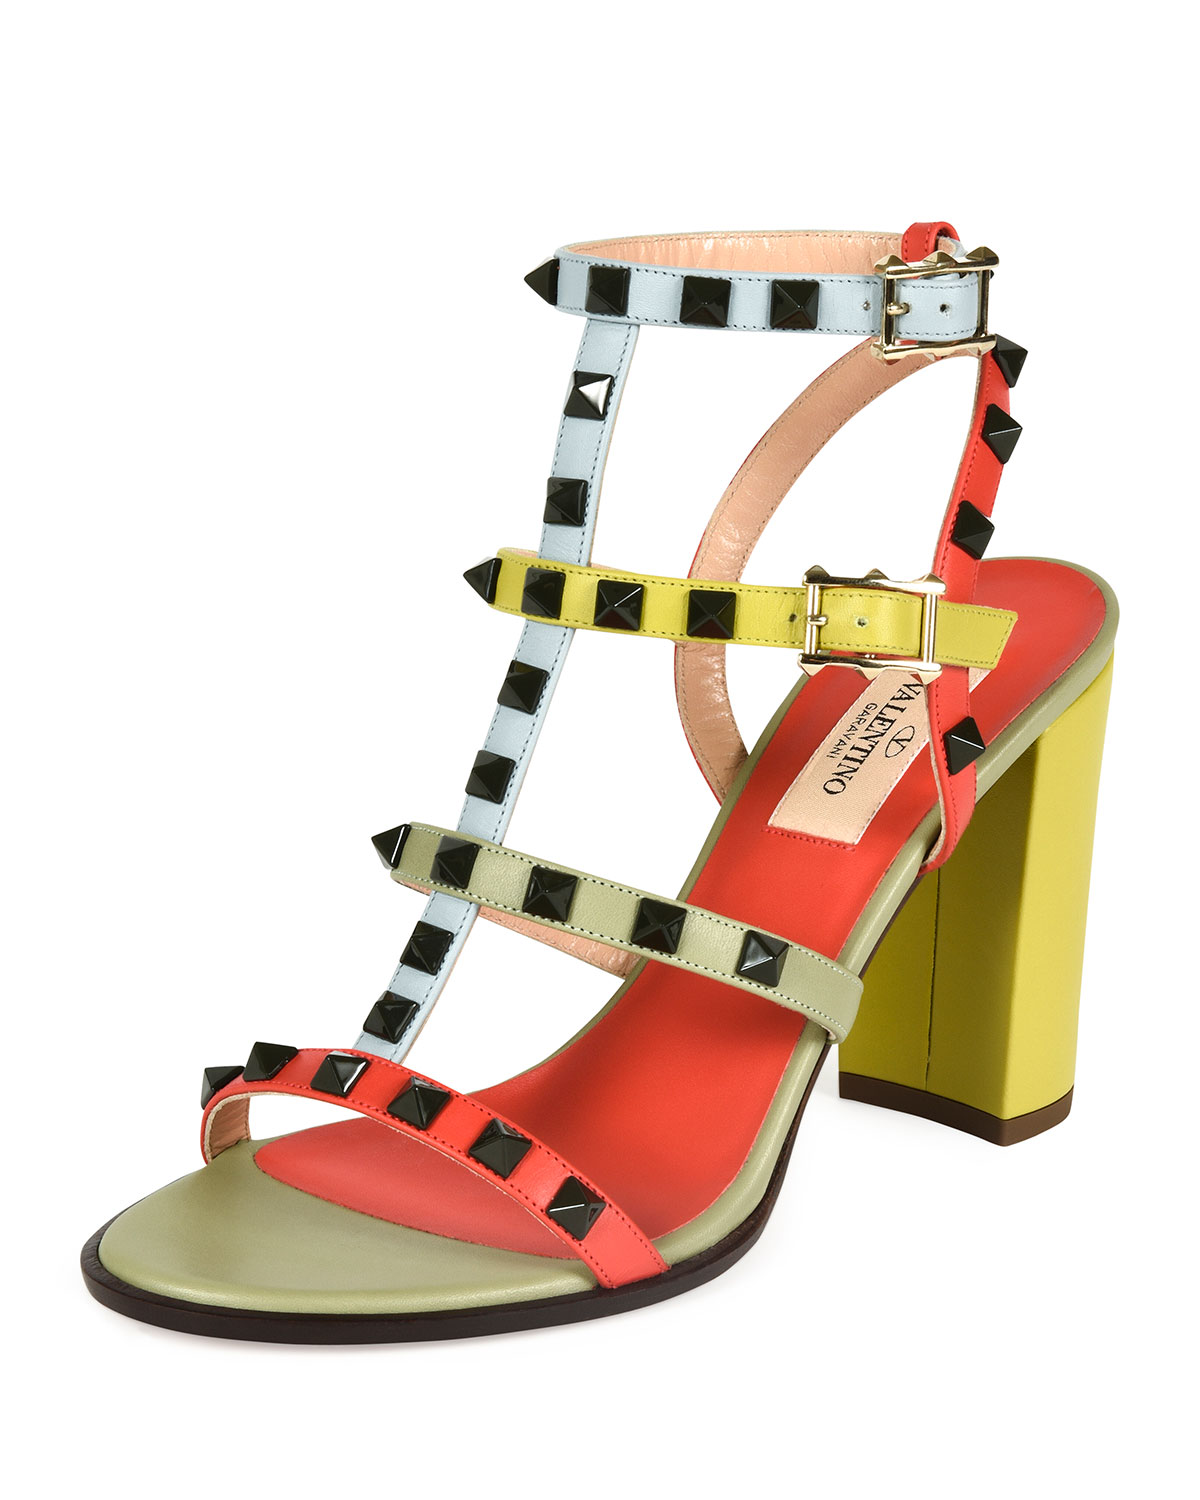 Lacquered Rockstud Chunky-Heel Sandal, Coral/Army Avocado, Size: 35.0B/5.0B, Coral Multi - Valentino